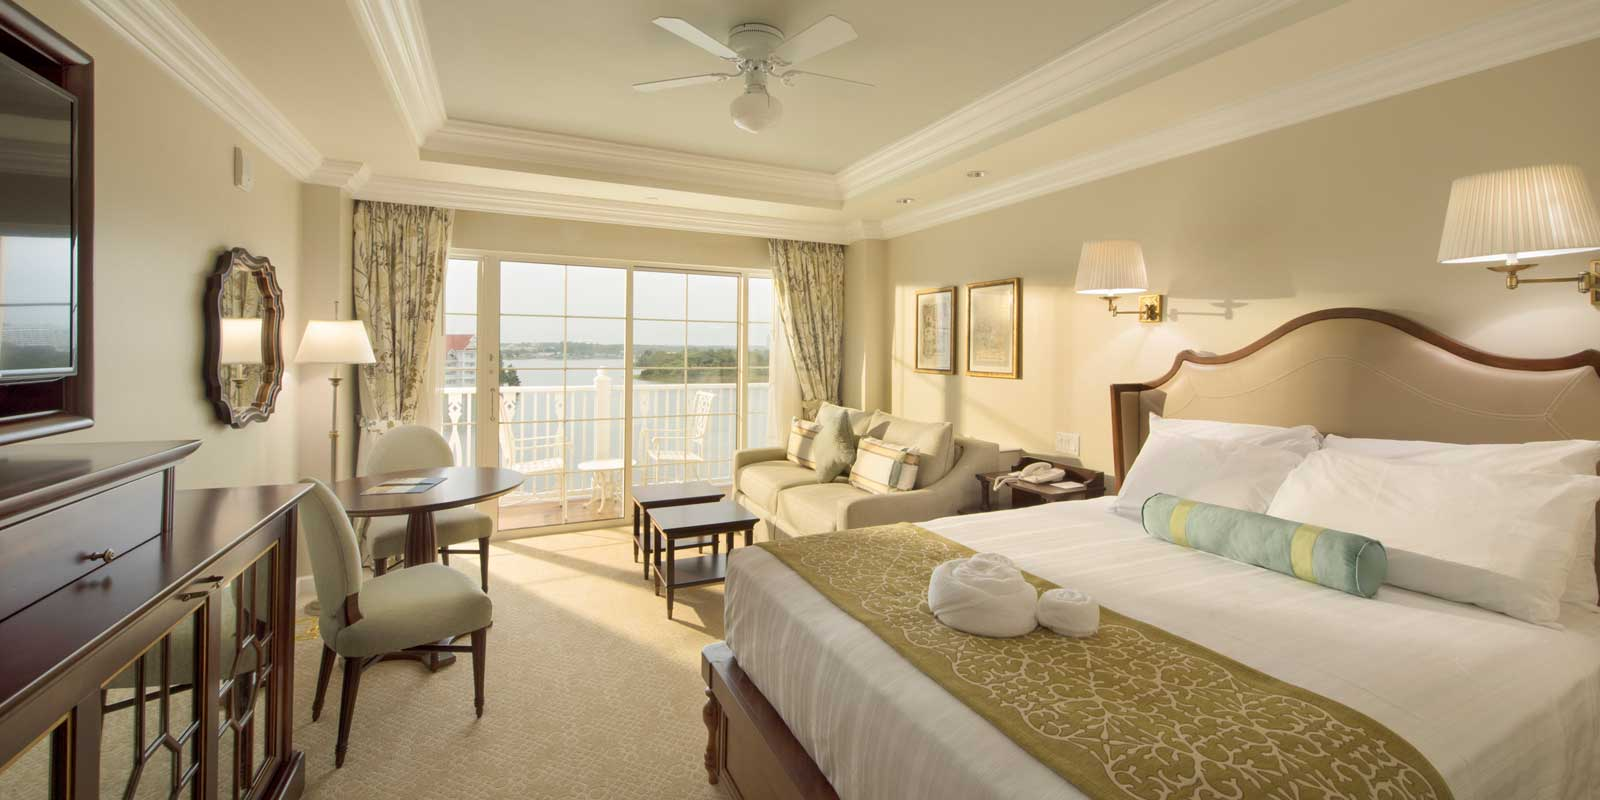 Room view of a Grand Floridian villa room.